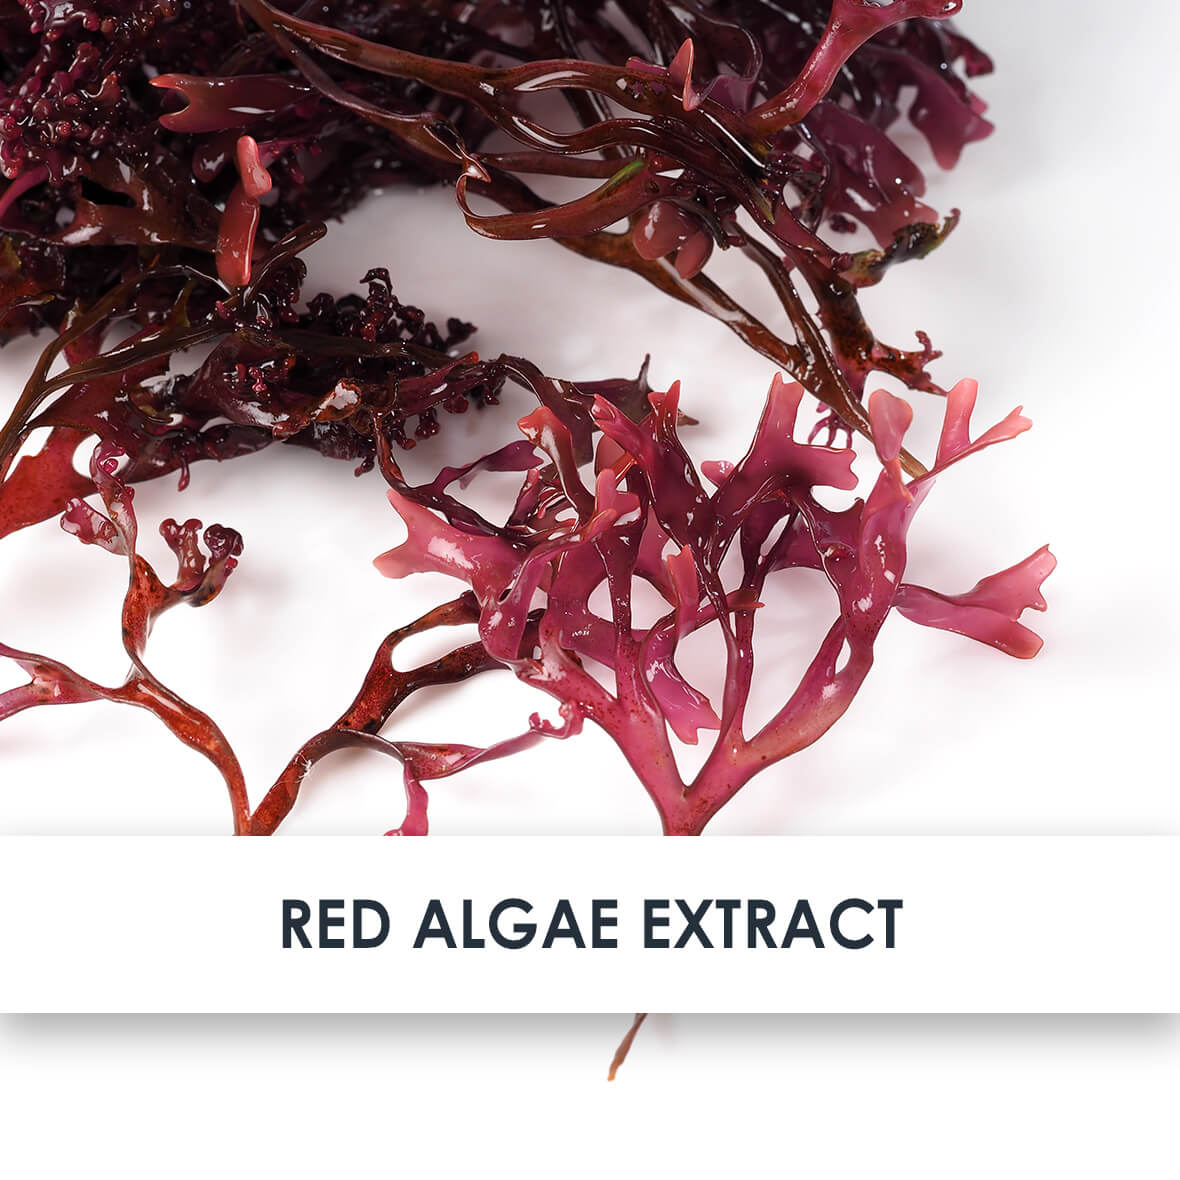 Red Algae Extract Skincare Benefits